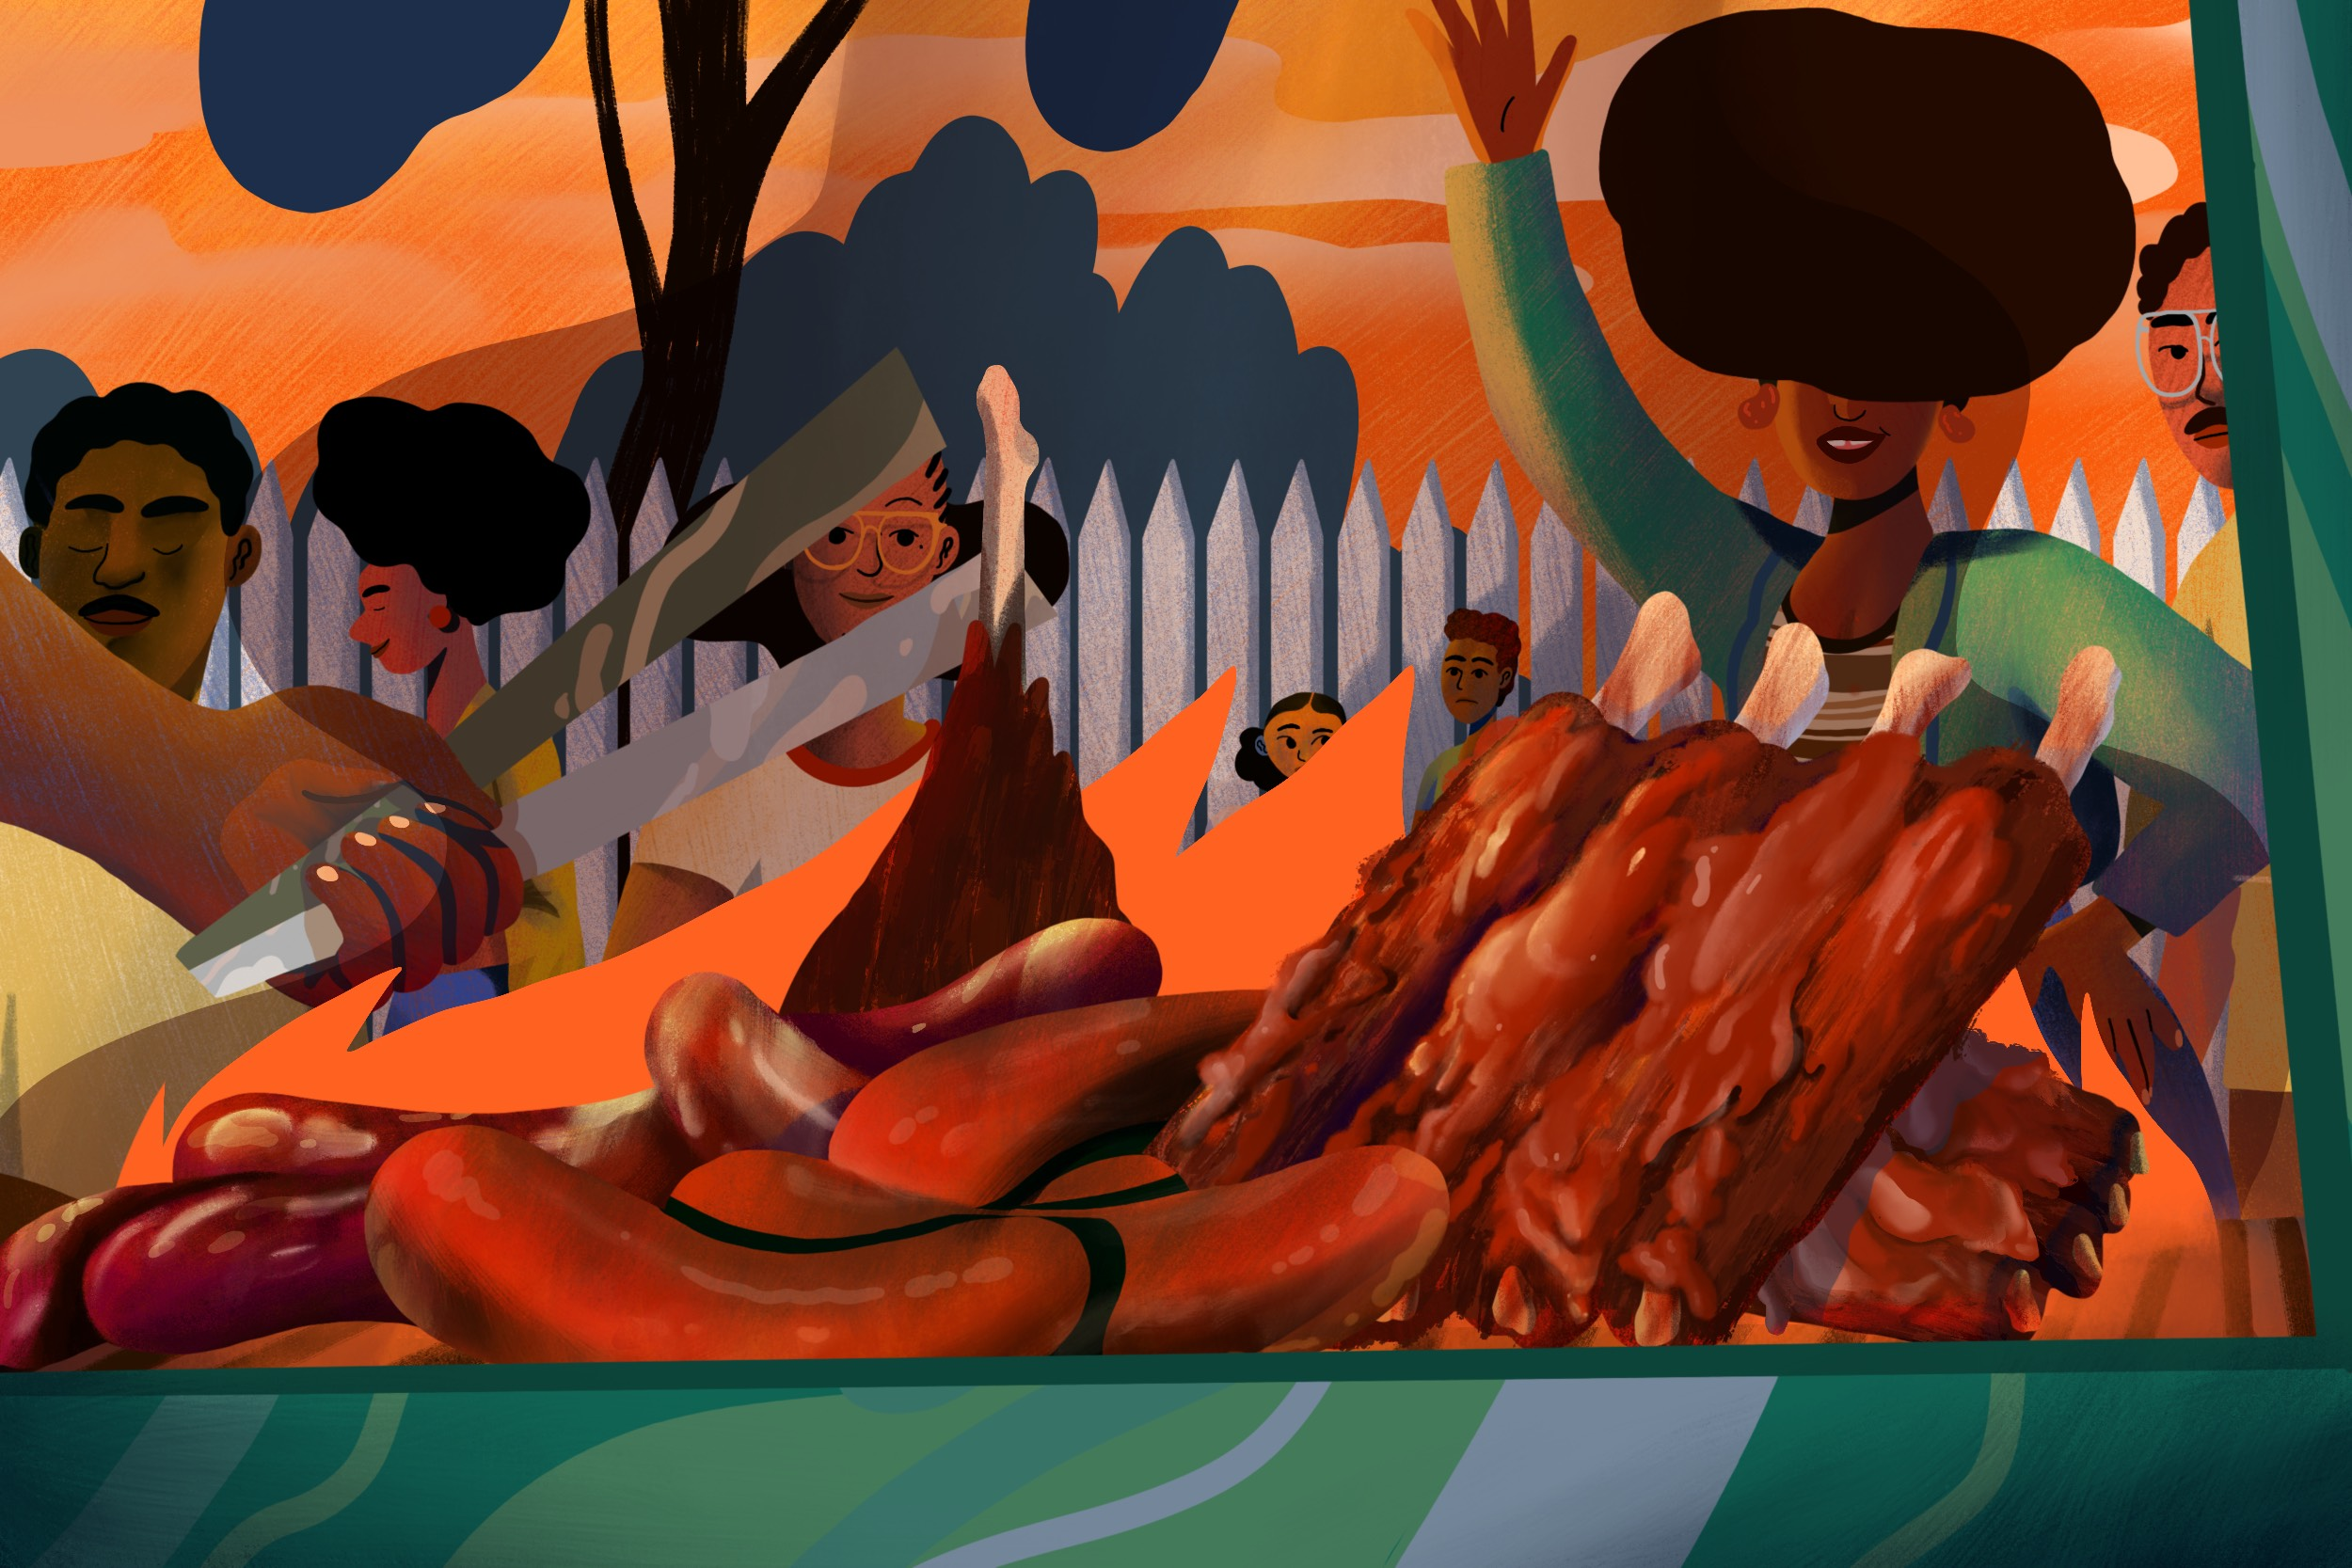 Illustration for growing up on Los Angeles Black barbecue by Camilla Sucre